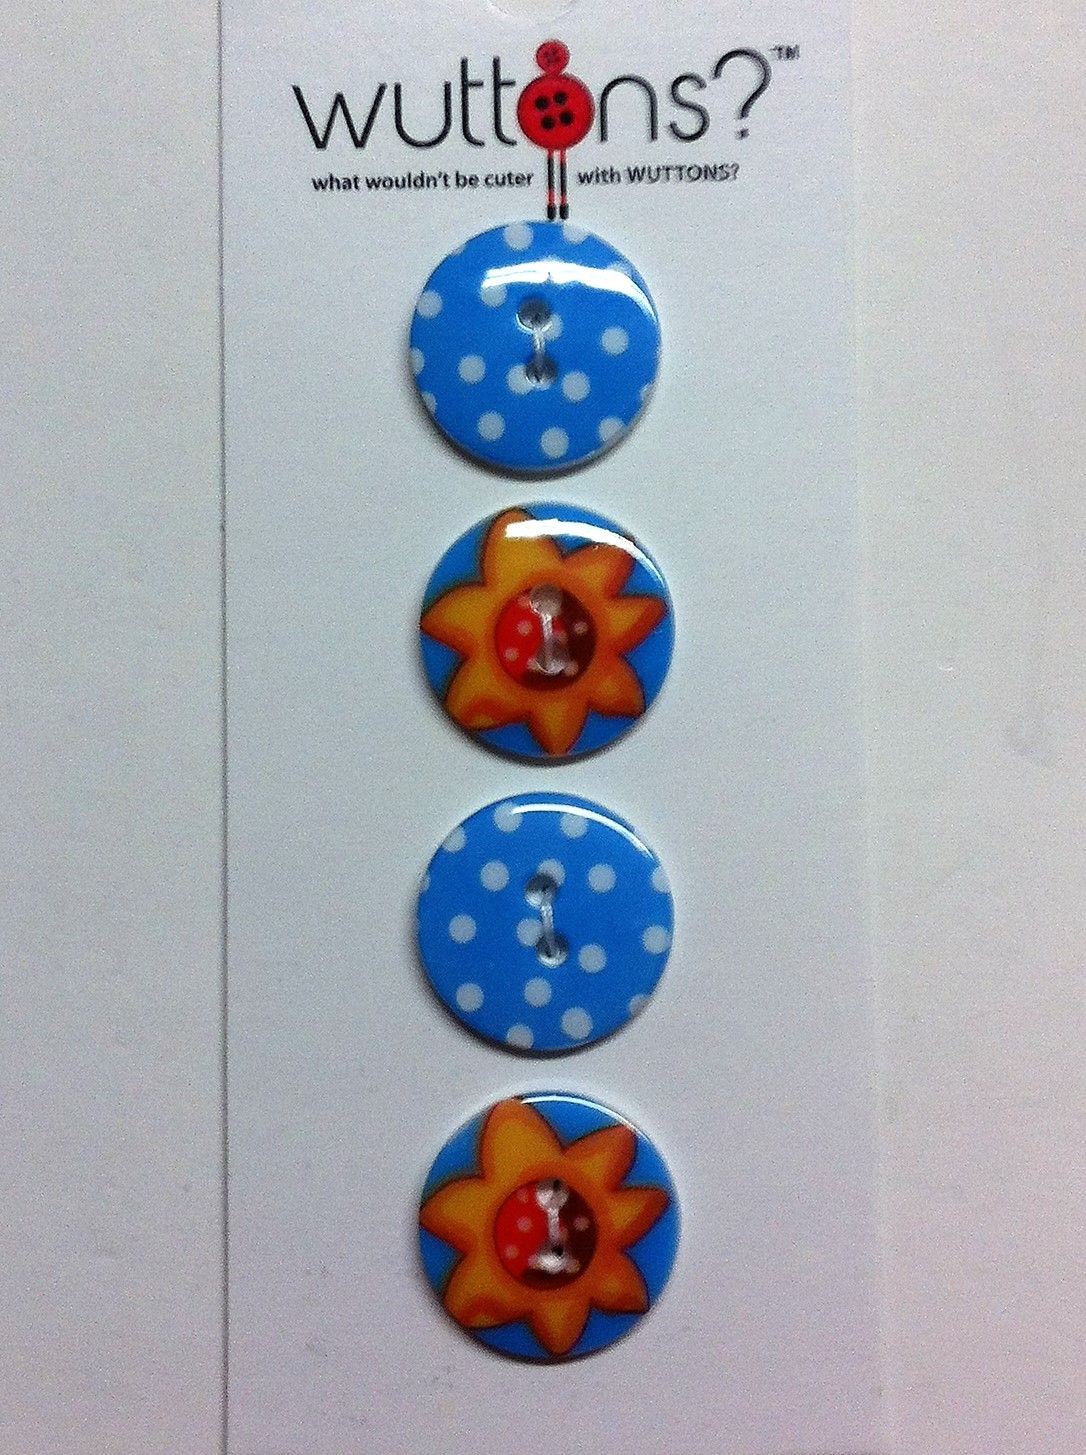 wuttons set of four jazzy buttons 3/4